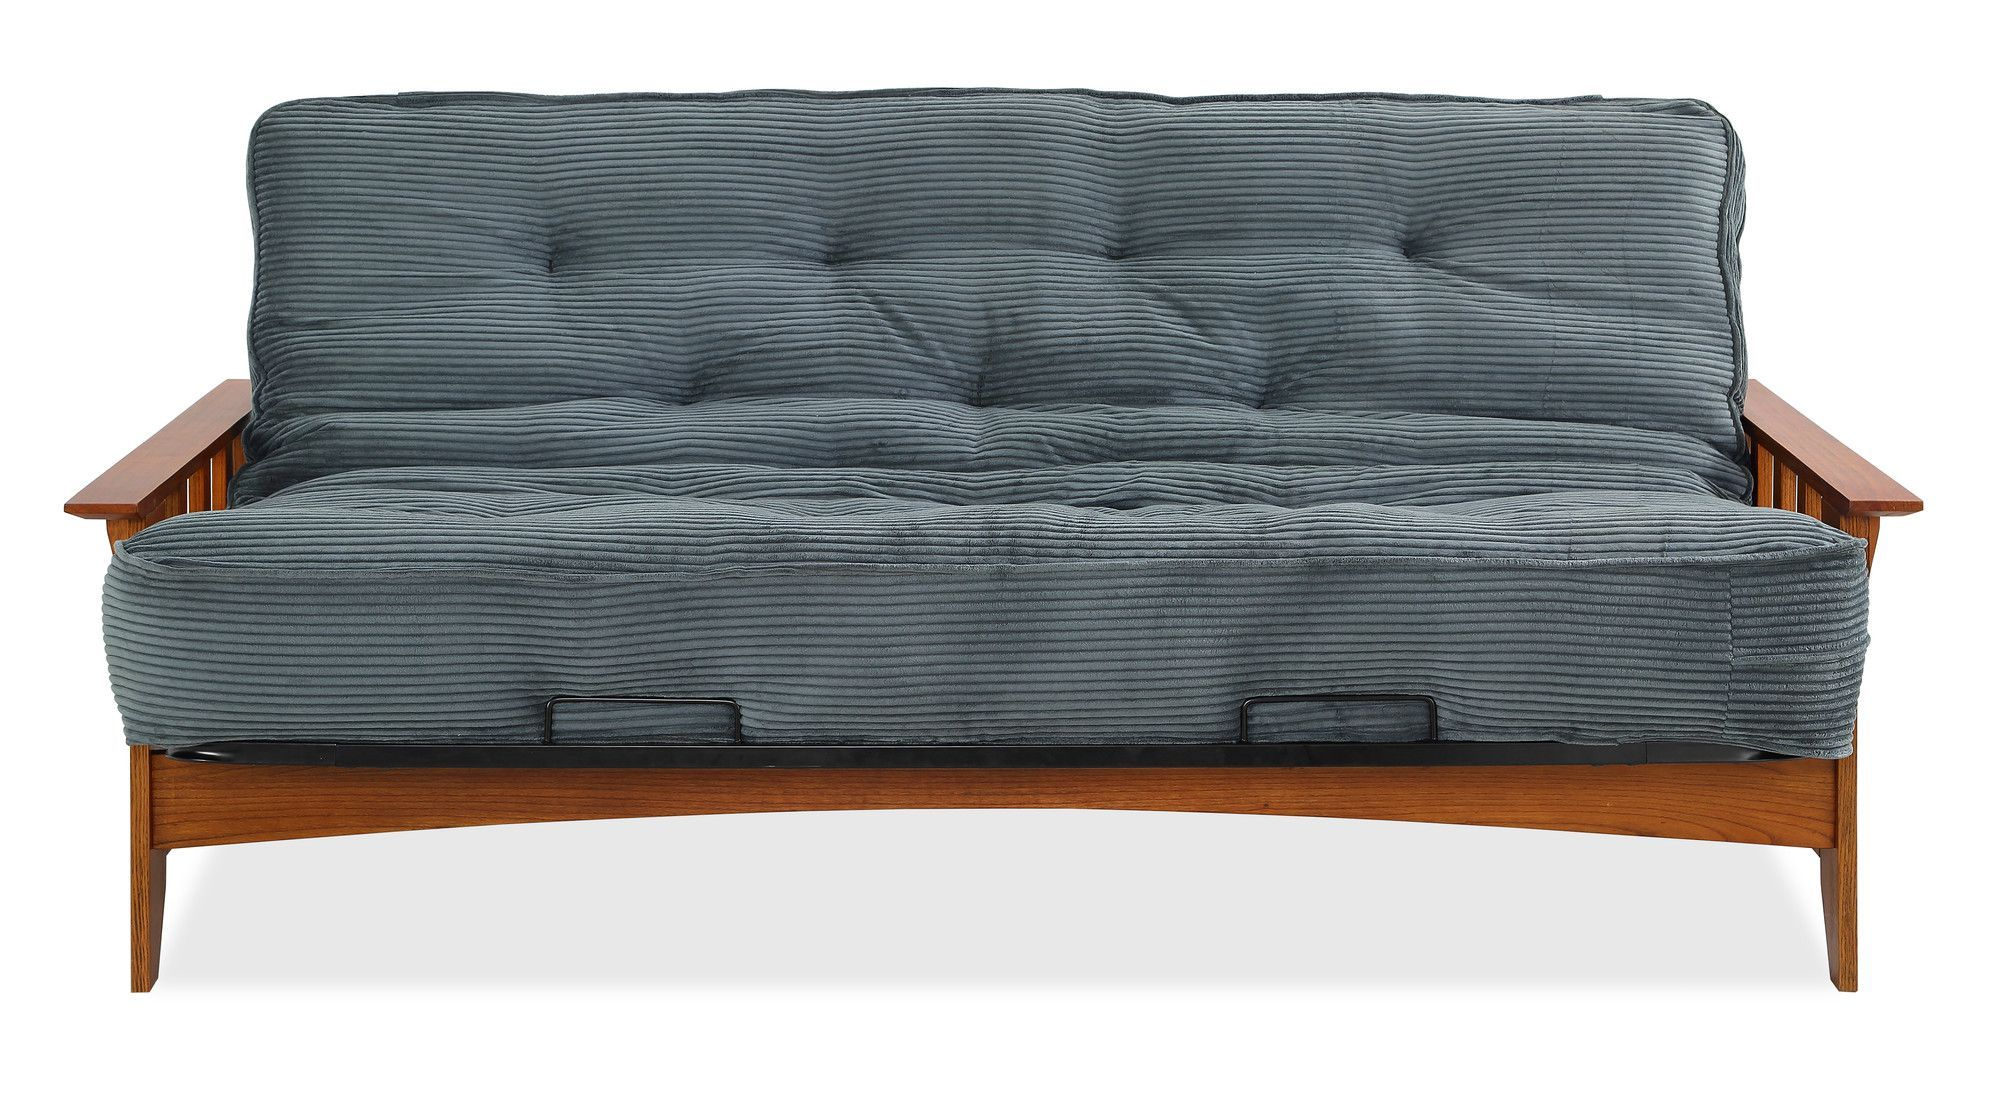 Simmons Futons Seattle Futon And Mattress Color Grey Corduroy